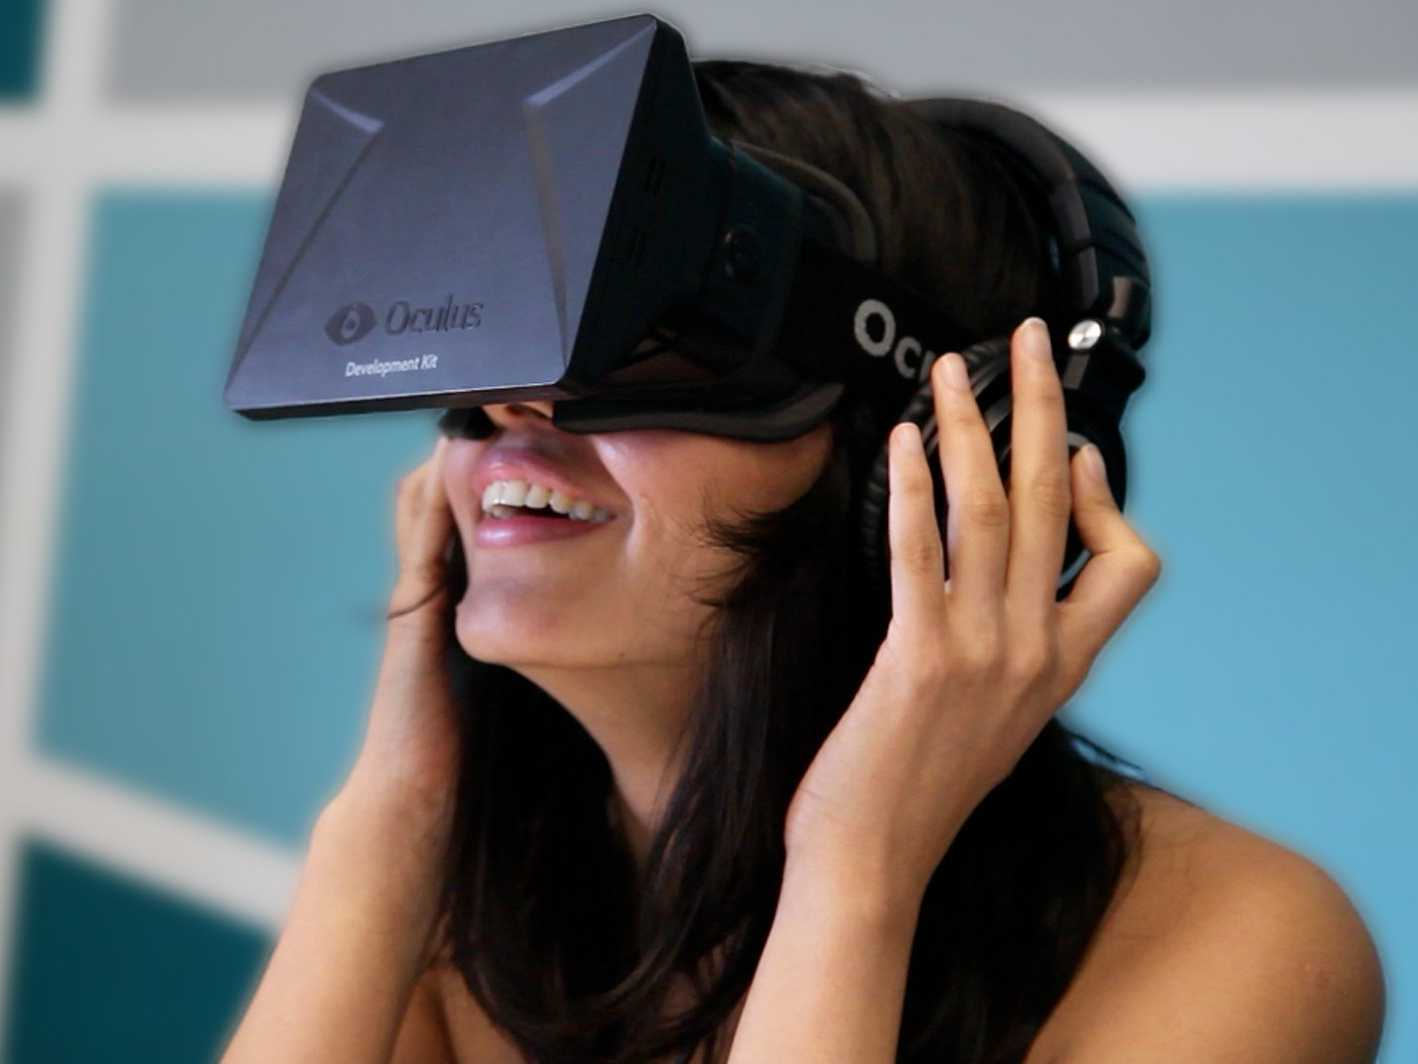 heres-what-happened-when-we-strapped-a-bunch-of-people-into-the-oculus-rift-virtual-reality-headset.jpg